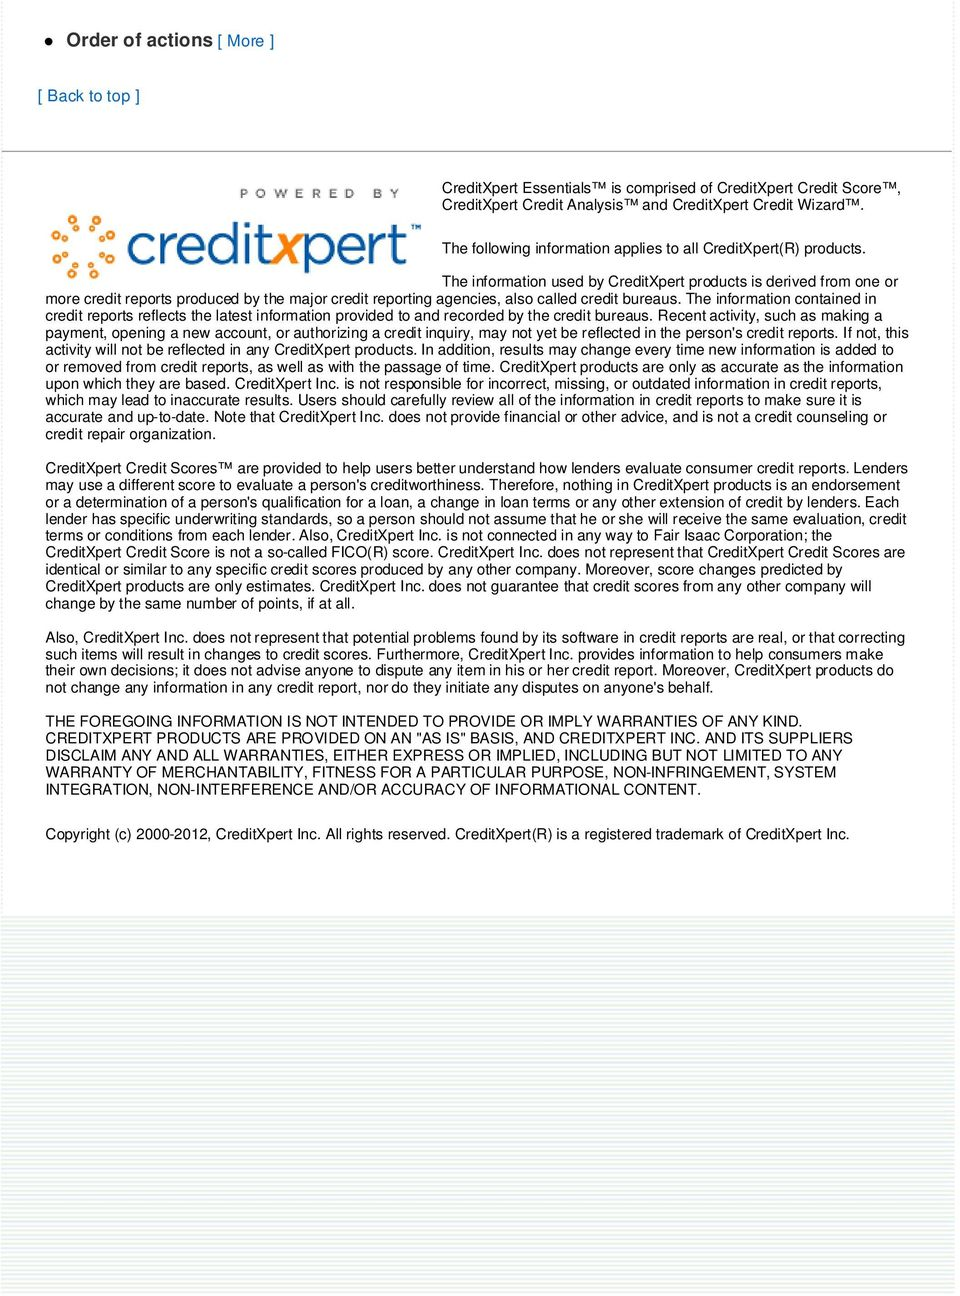 The information used by CreditXpert products is derived from one or more credit reports produced by the major credit reporting agencies, also called credit bureaus.